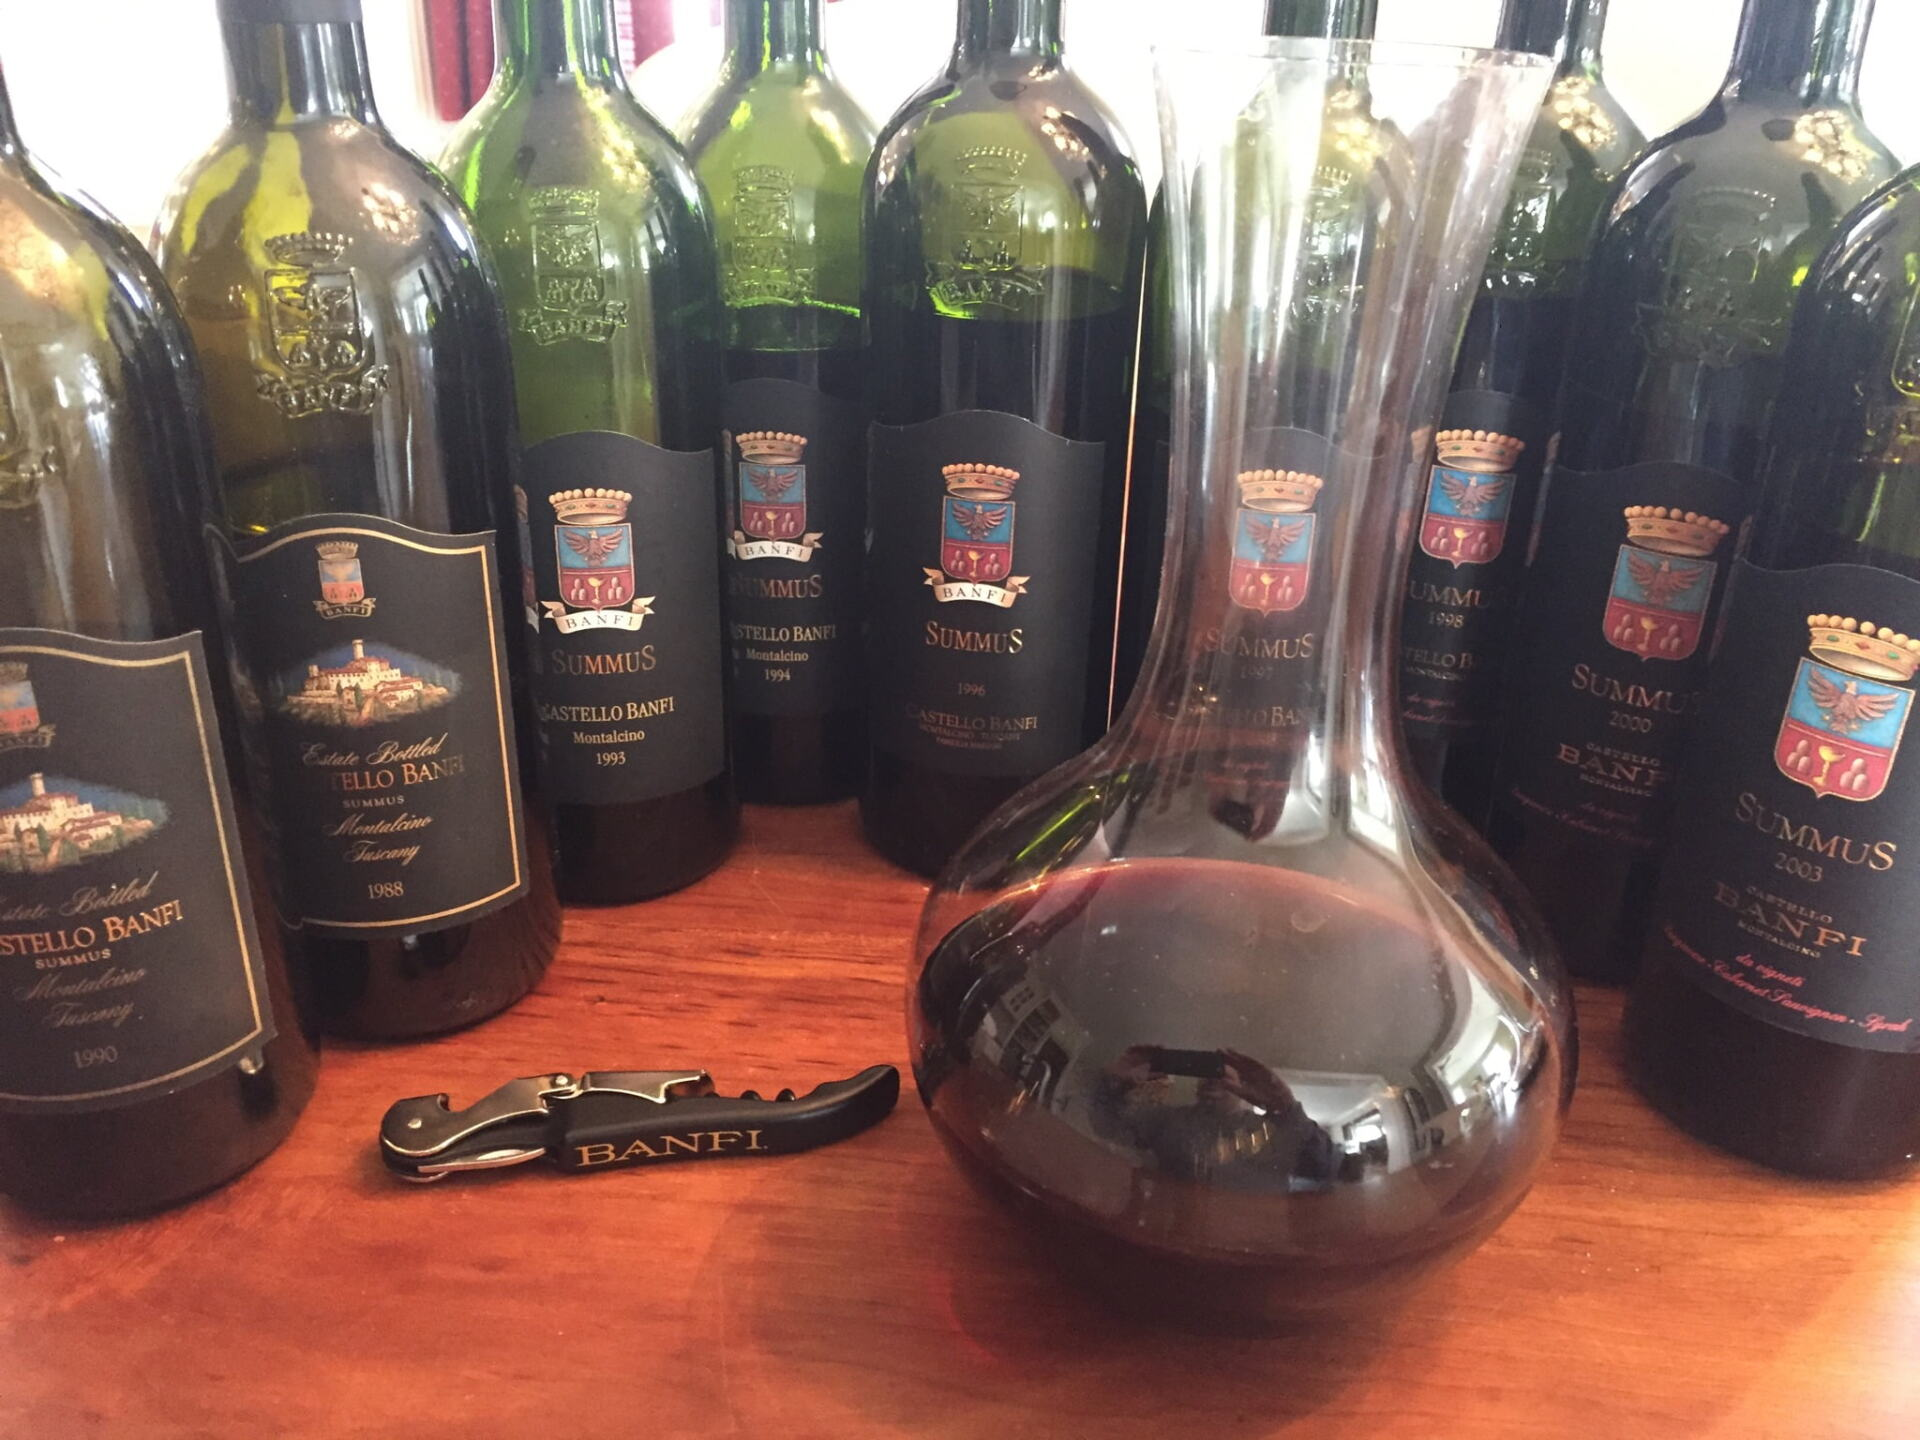 Corkscrew, decanter filled with red wine and 9 wine bottles of Summus